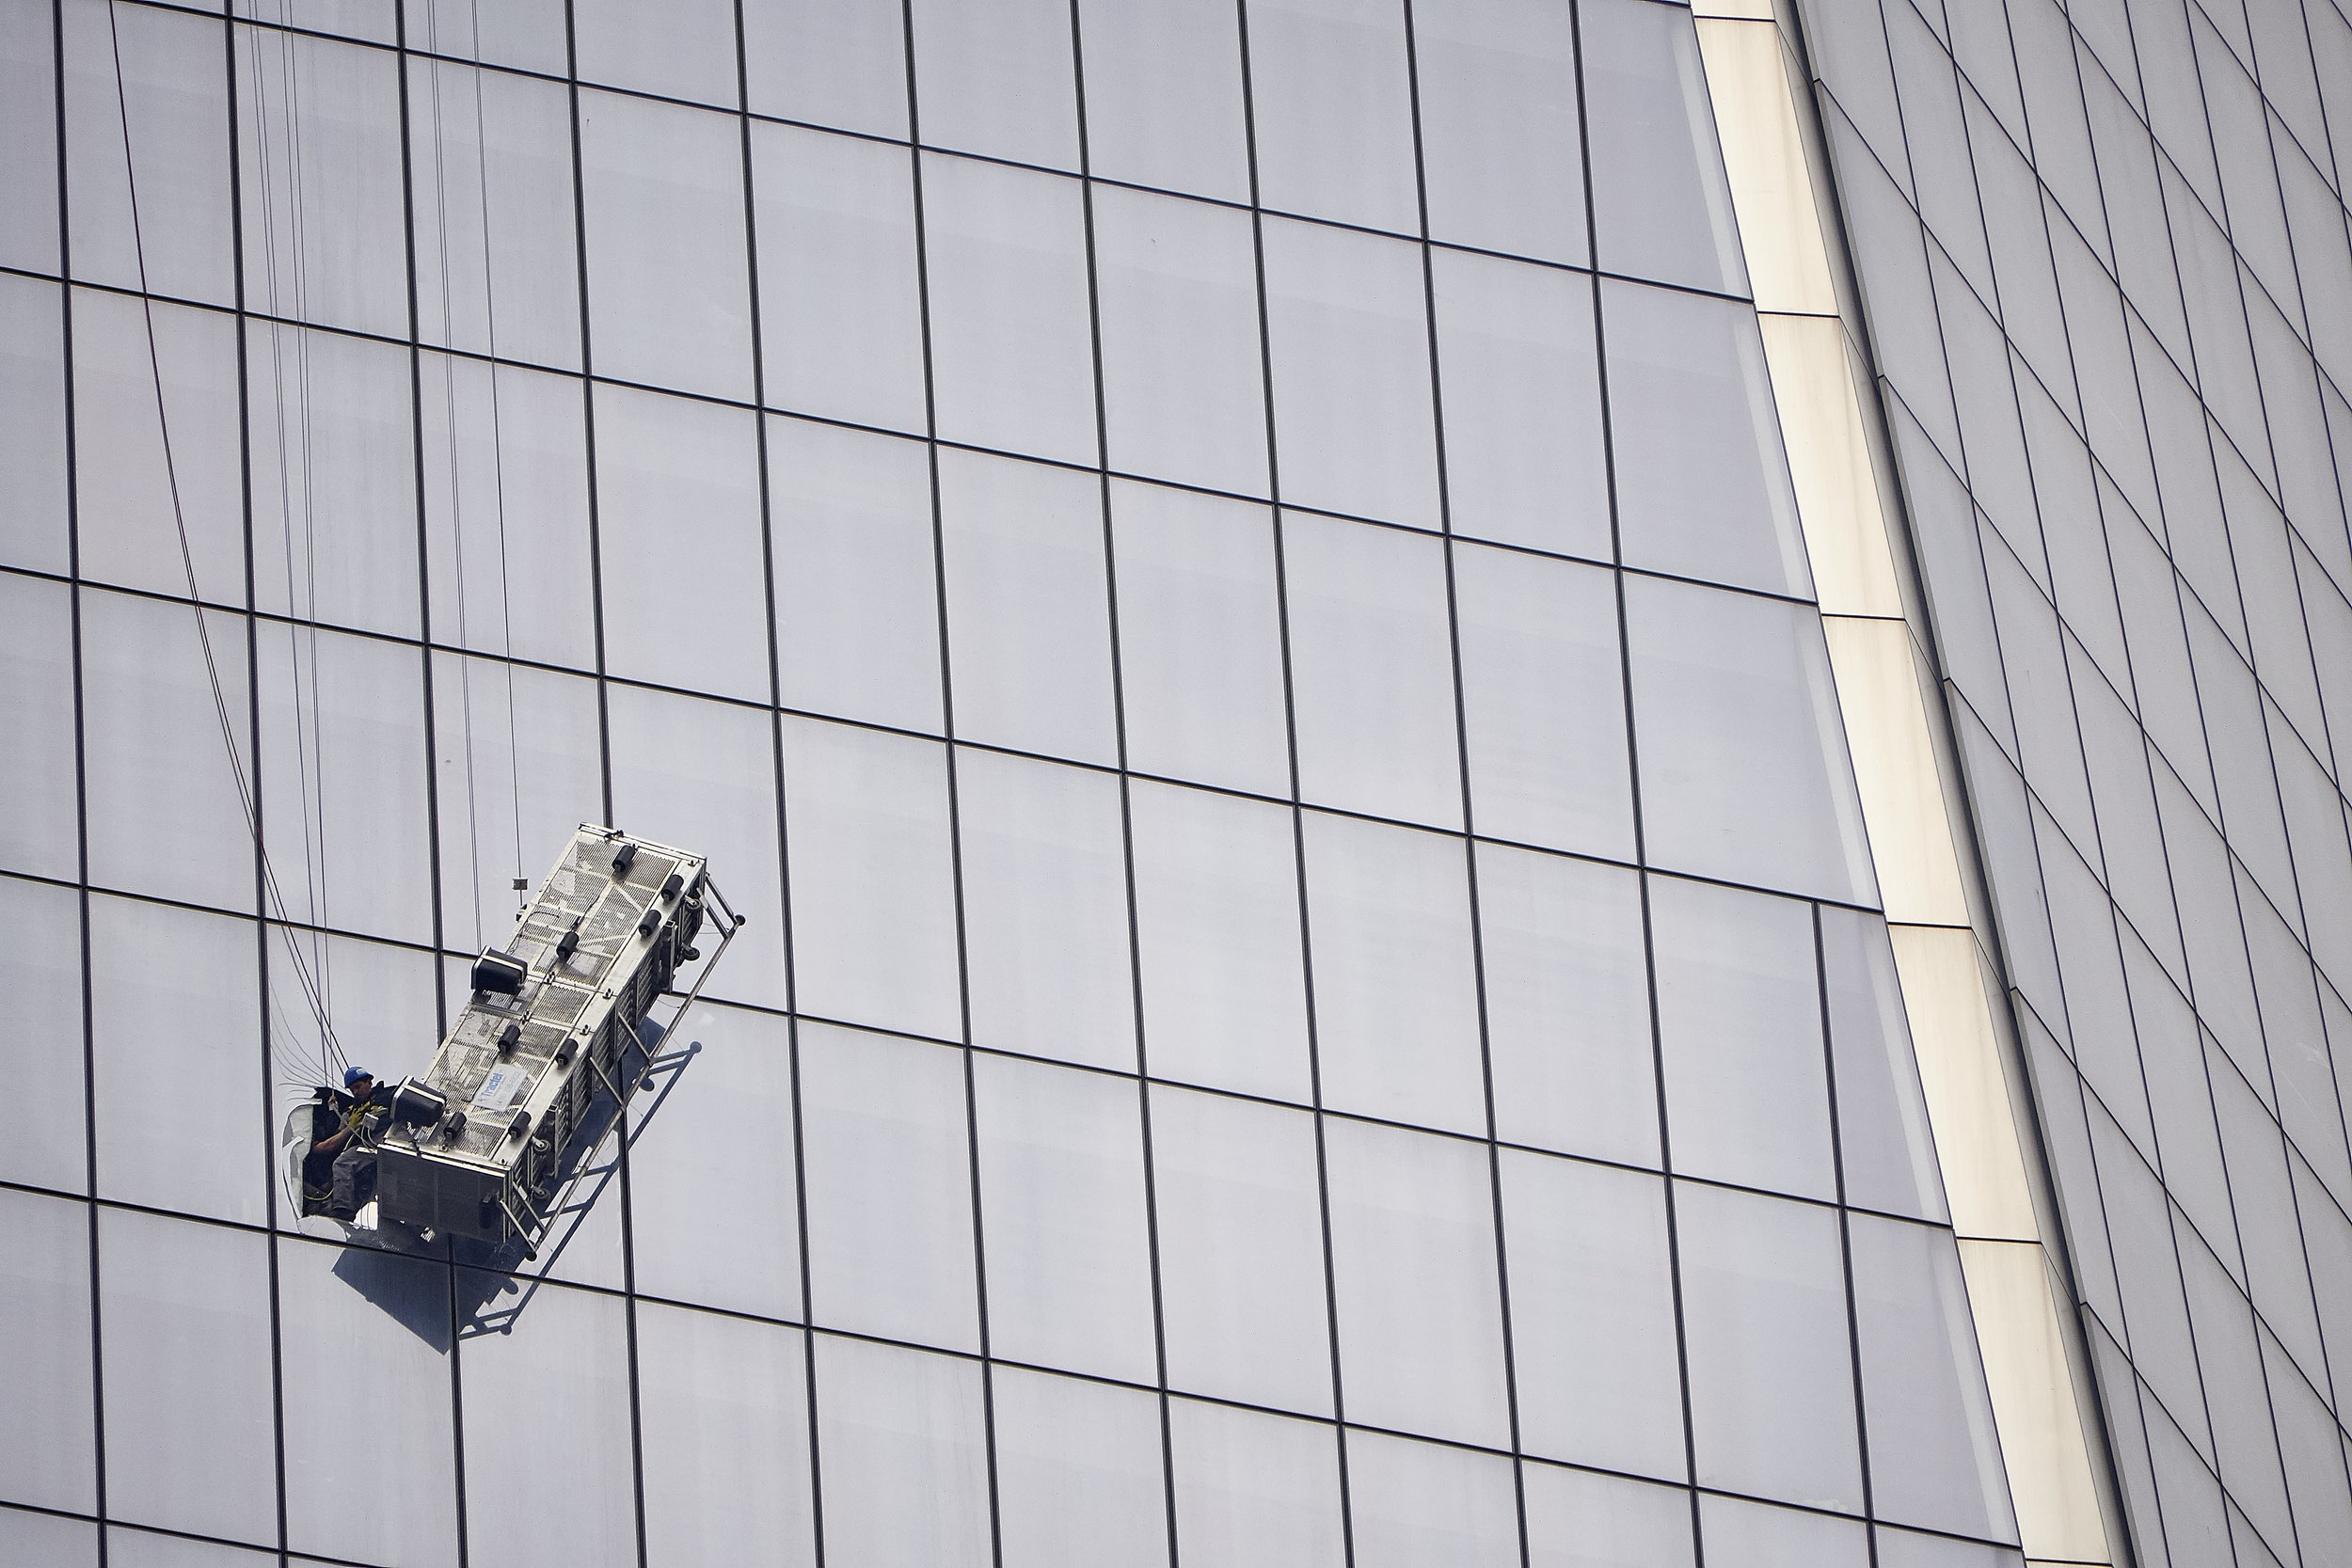 Two window washers were rescued from a scaffolding dangling 69 floors above lower Manhattan at 1 World Trade Center on Wednesday, Nov. 12, 2014 in New York, N.Y.